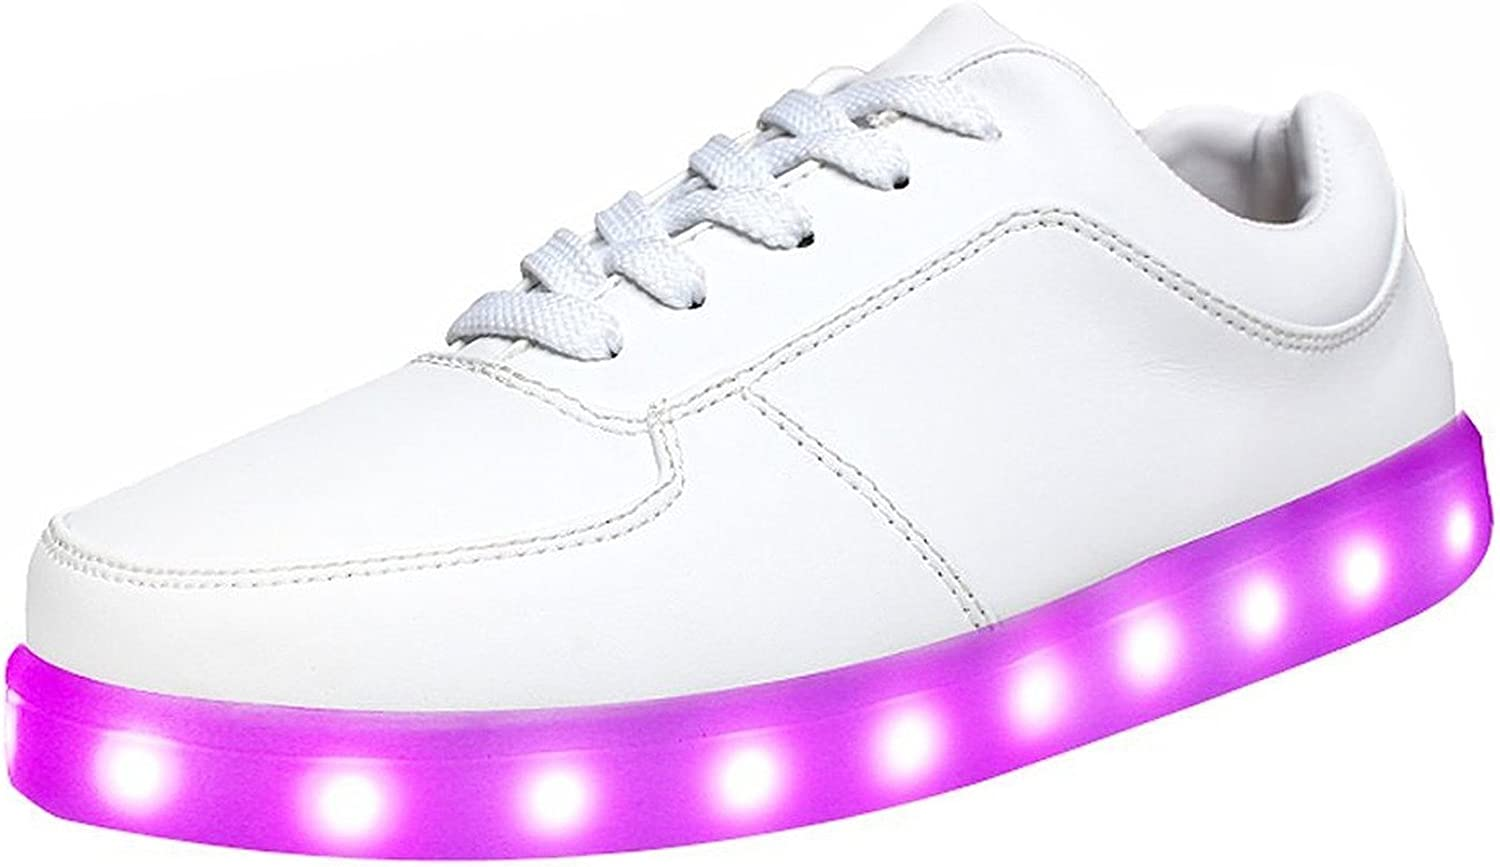 Pilusooou Cool and Popular Unisex 7 colors LED Light Up Sport shoes Flashing Sneakers